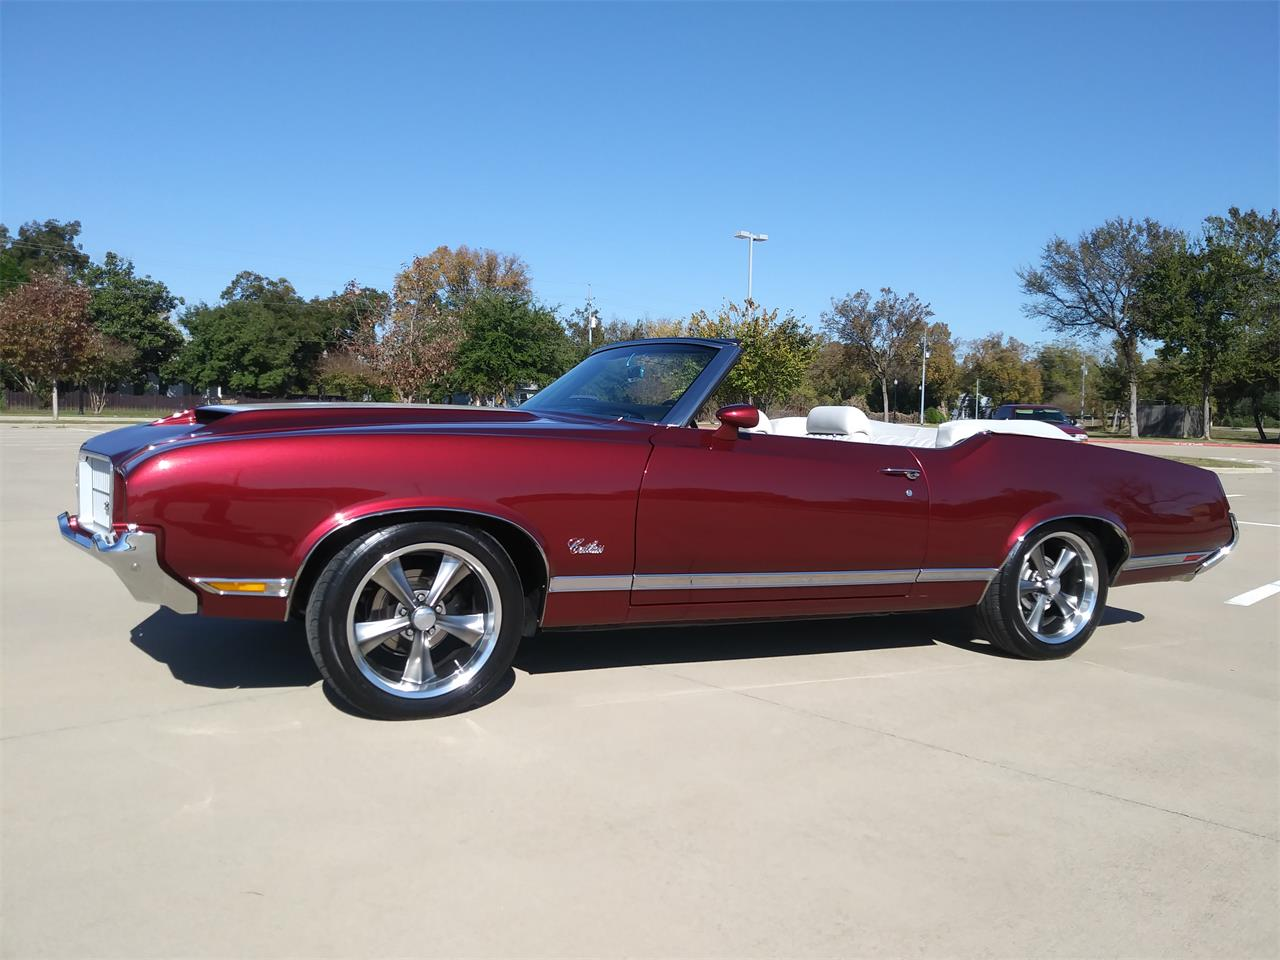 1971 Oldsmobile Cutlass Supreme (CC-1321488) for sale in Pflugerville, Texas